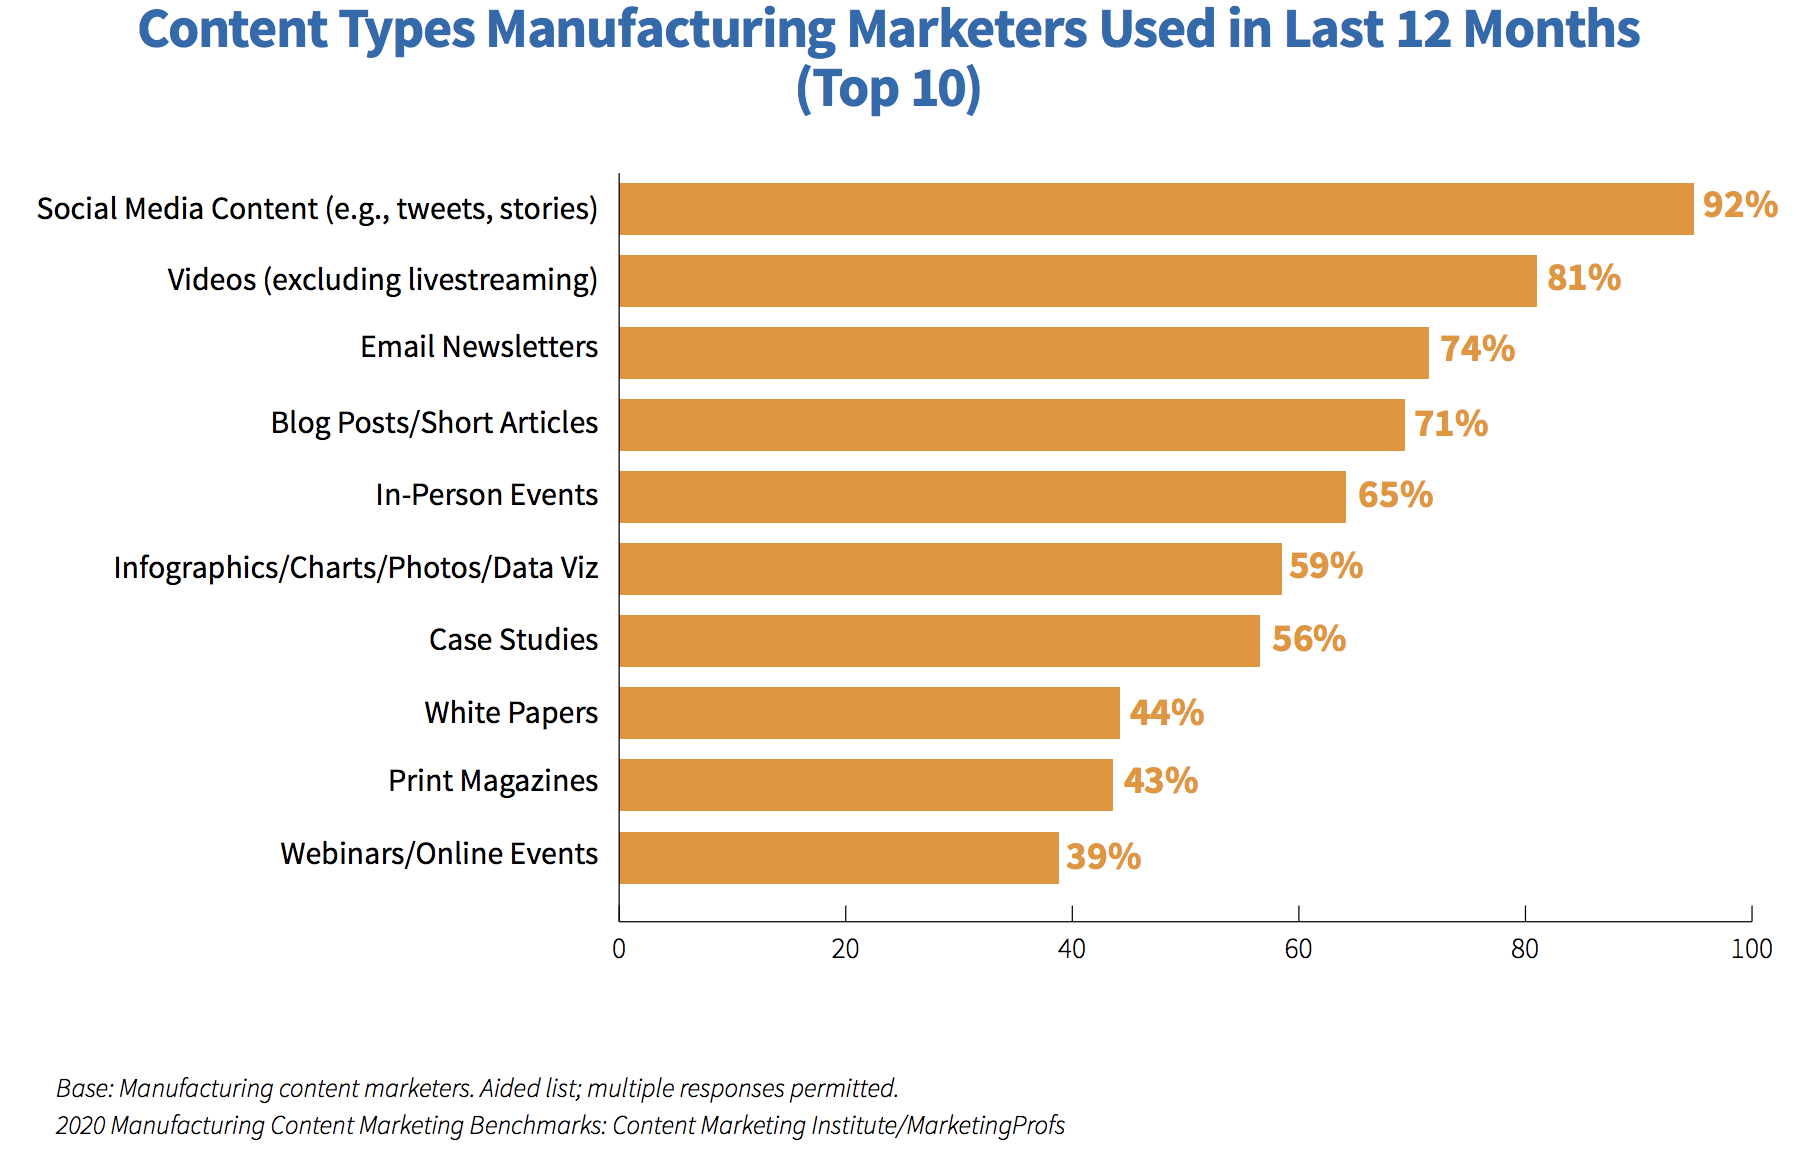 Content Types Manufacturing Marketers Used in the Past 12 Months